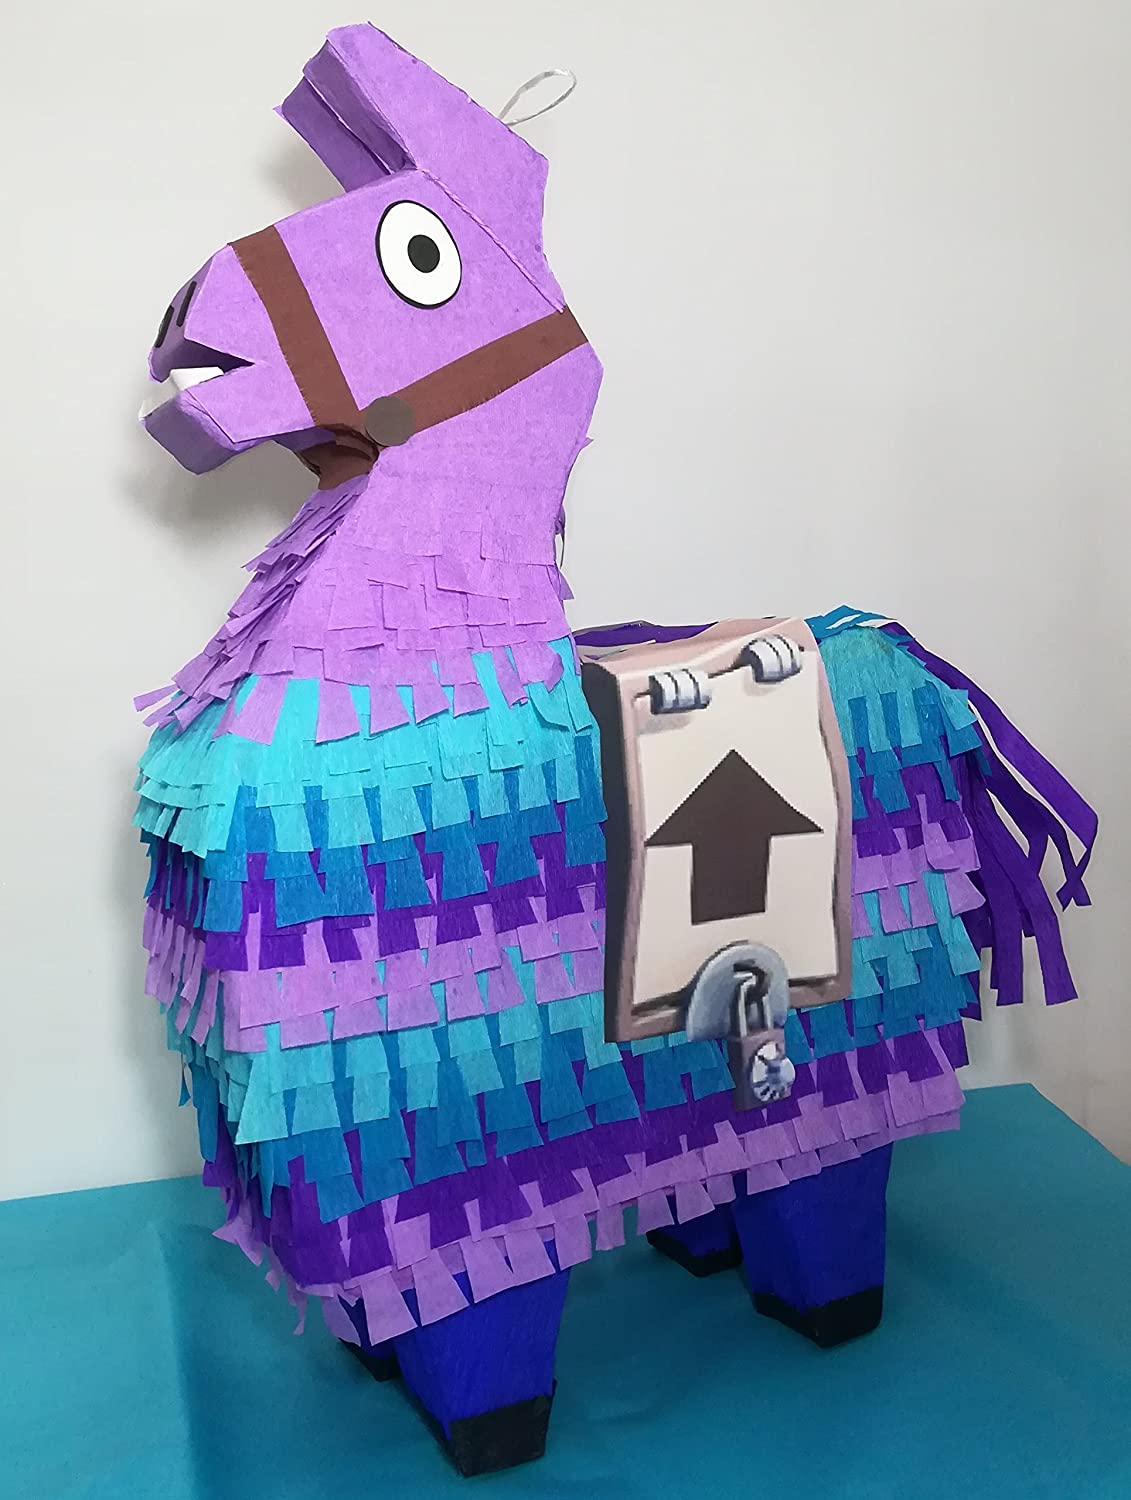 Amazon.com: FORNITE BATTLE ROYALE LLAMA PINATA, FORTNITE LLAMA BIRTHDAY, FORTNITE PARTY SUPPLIES, FORTNITE BIRTHDAY PARTY: Handmade